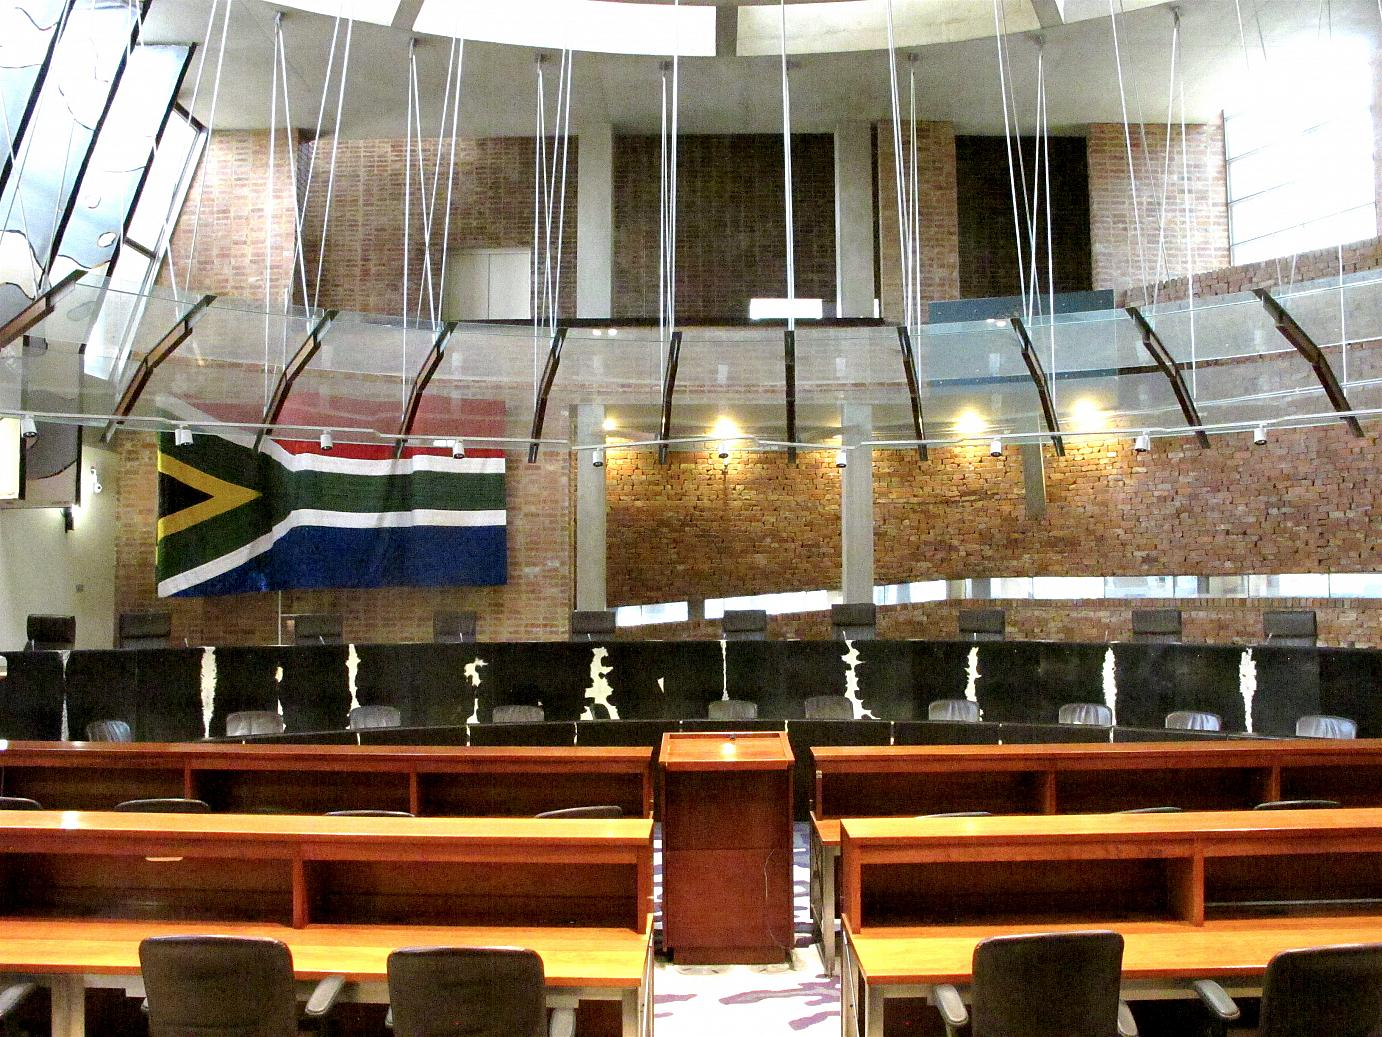 The Plenary Hall of the Constitutional Court in Johannesburg.